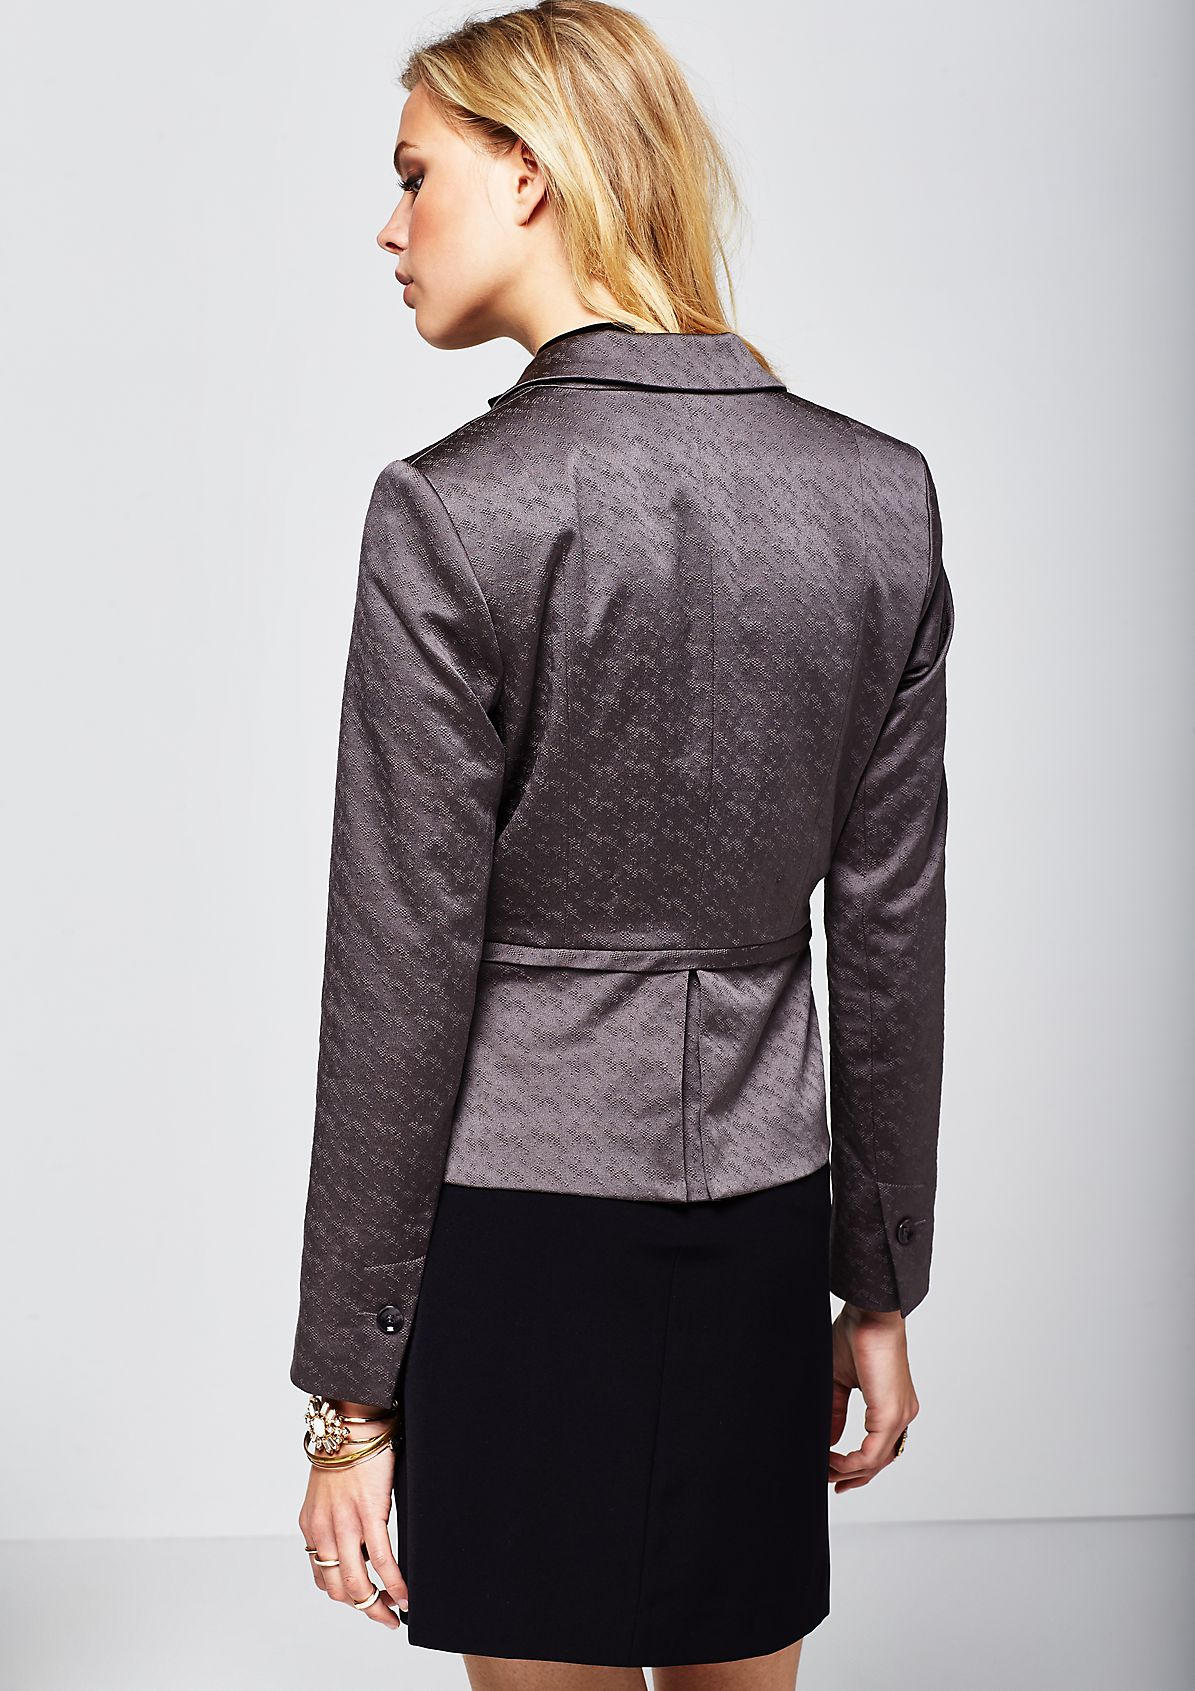 Fine business blouse with a decorative tone-in-tone jacquard pattern from s.Oliver